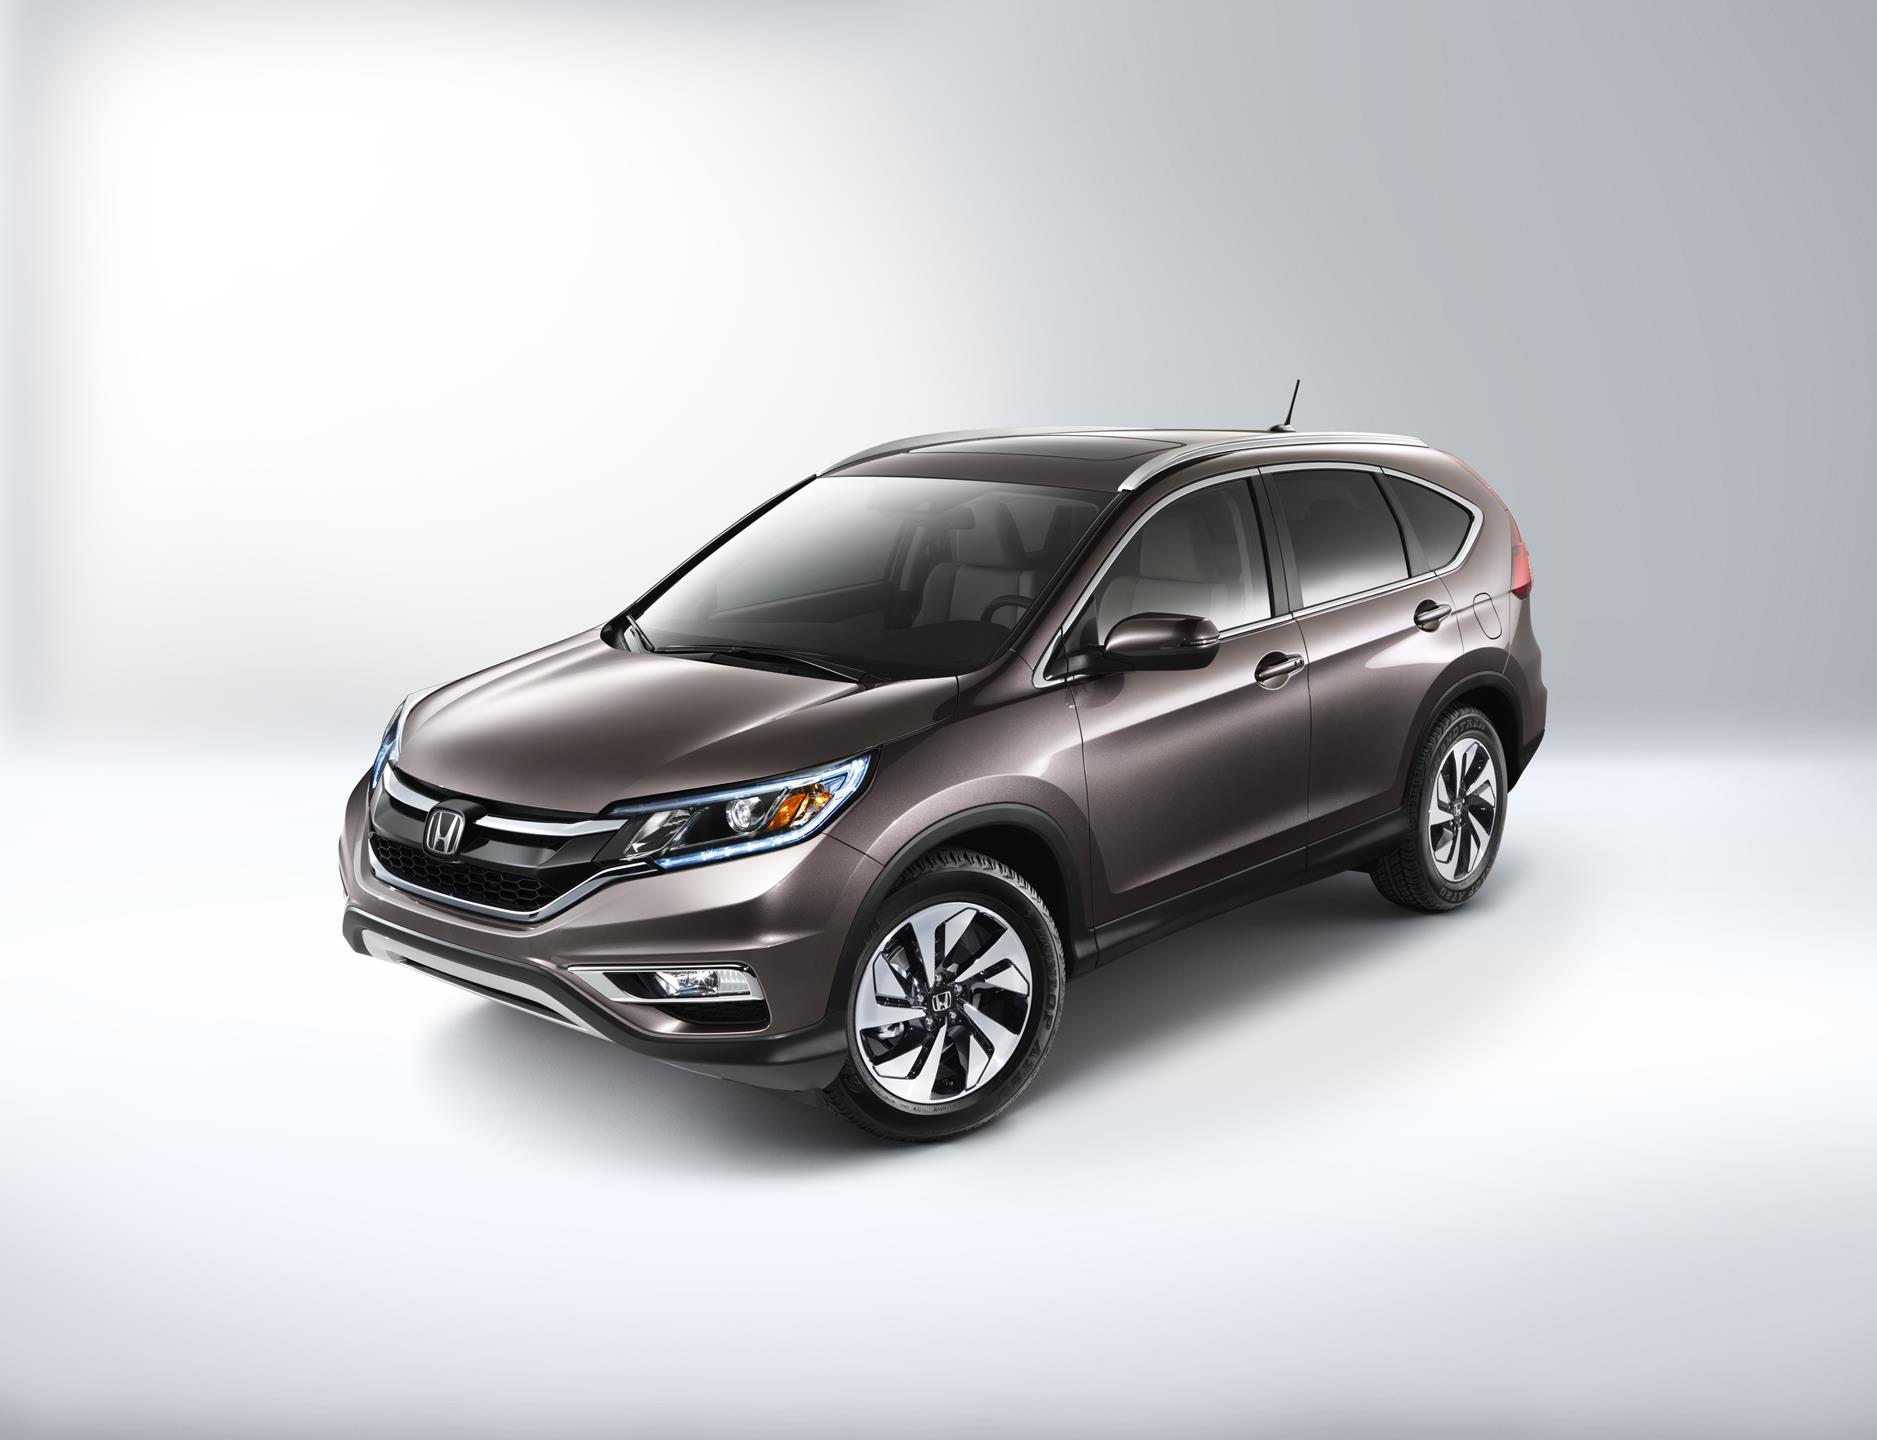 2016 honda cr v technical specifications and data engine dimensions and mechanical details. Black Bedroom Furniture Sets. Home Design Ideas